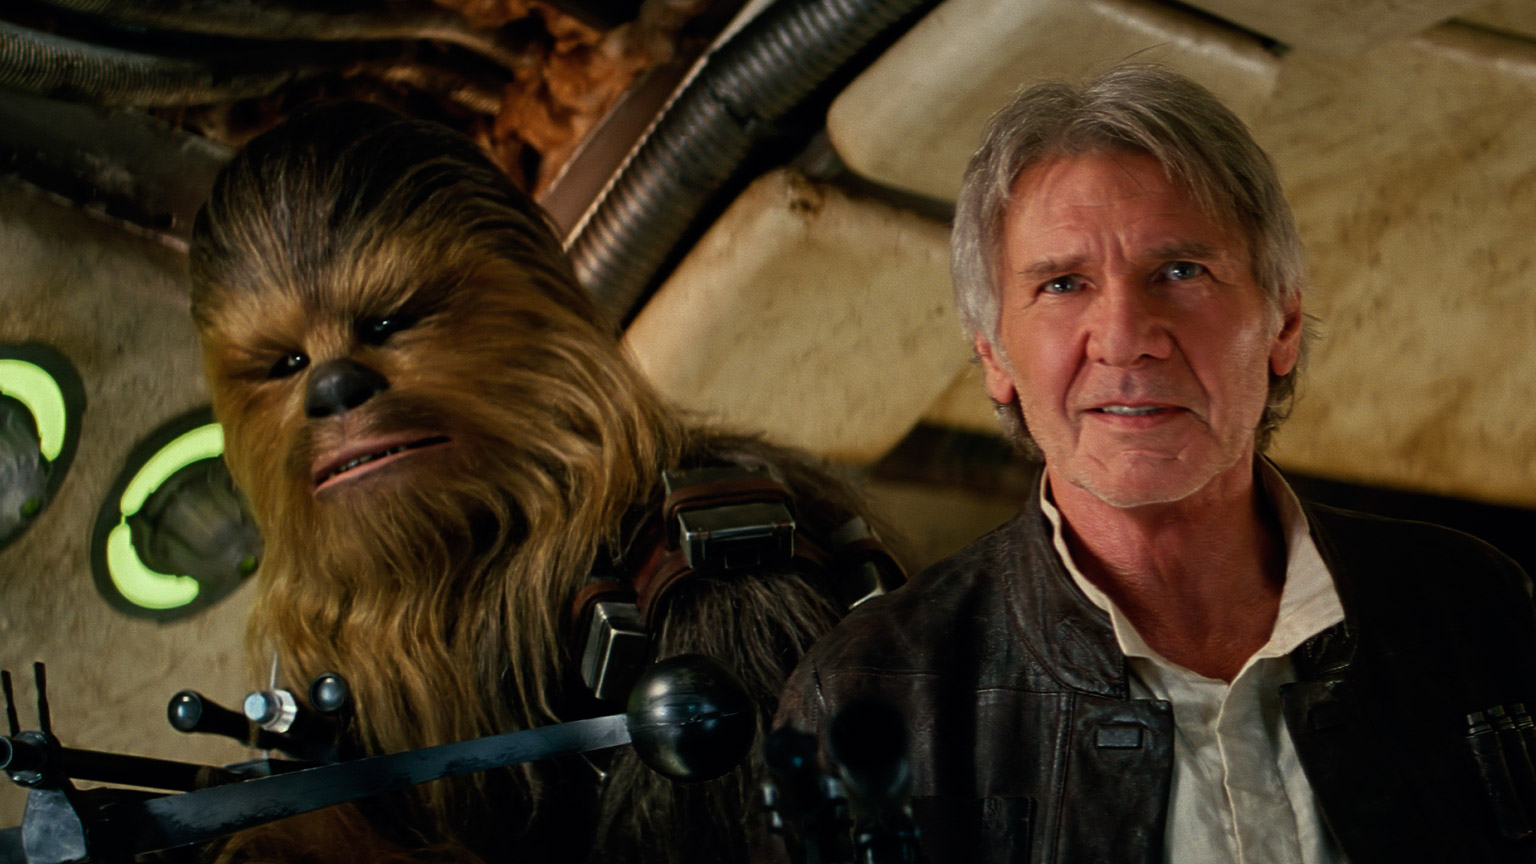 Han and Chewie in The Force Awakens.